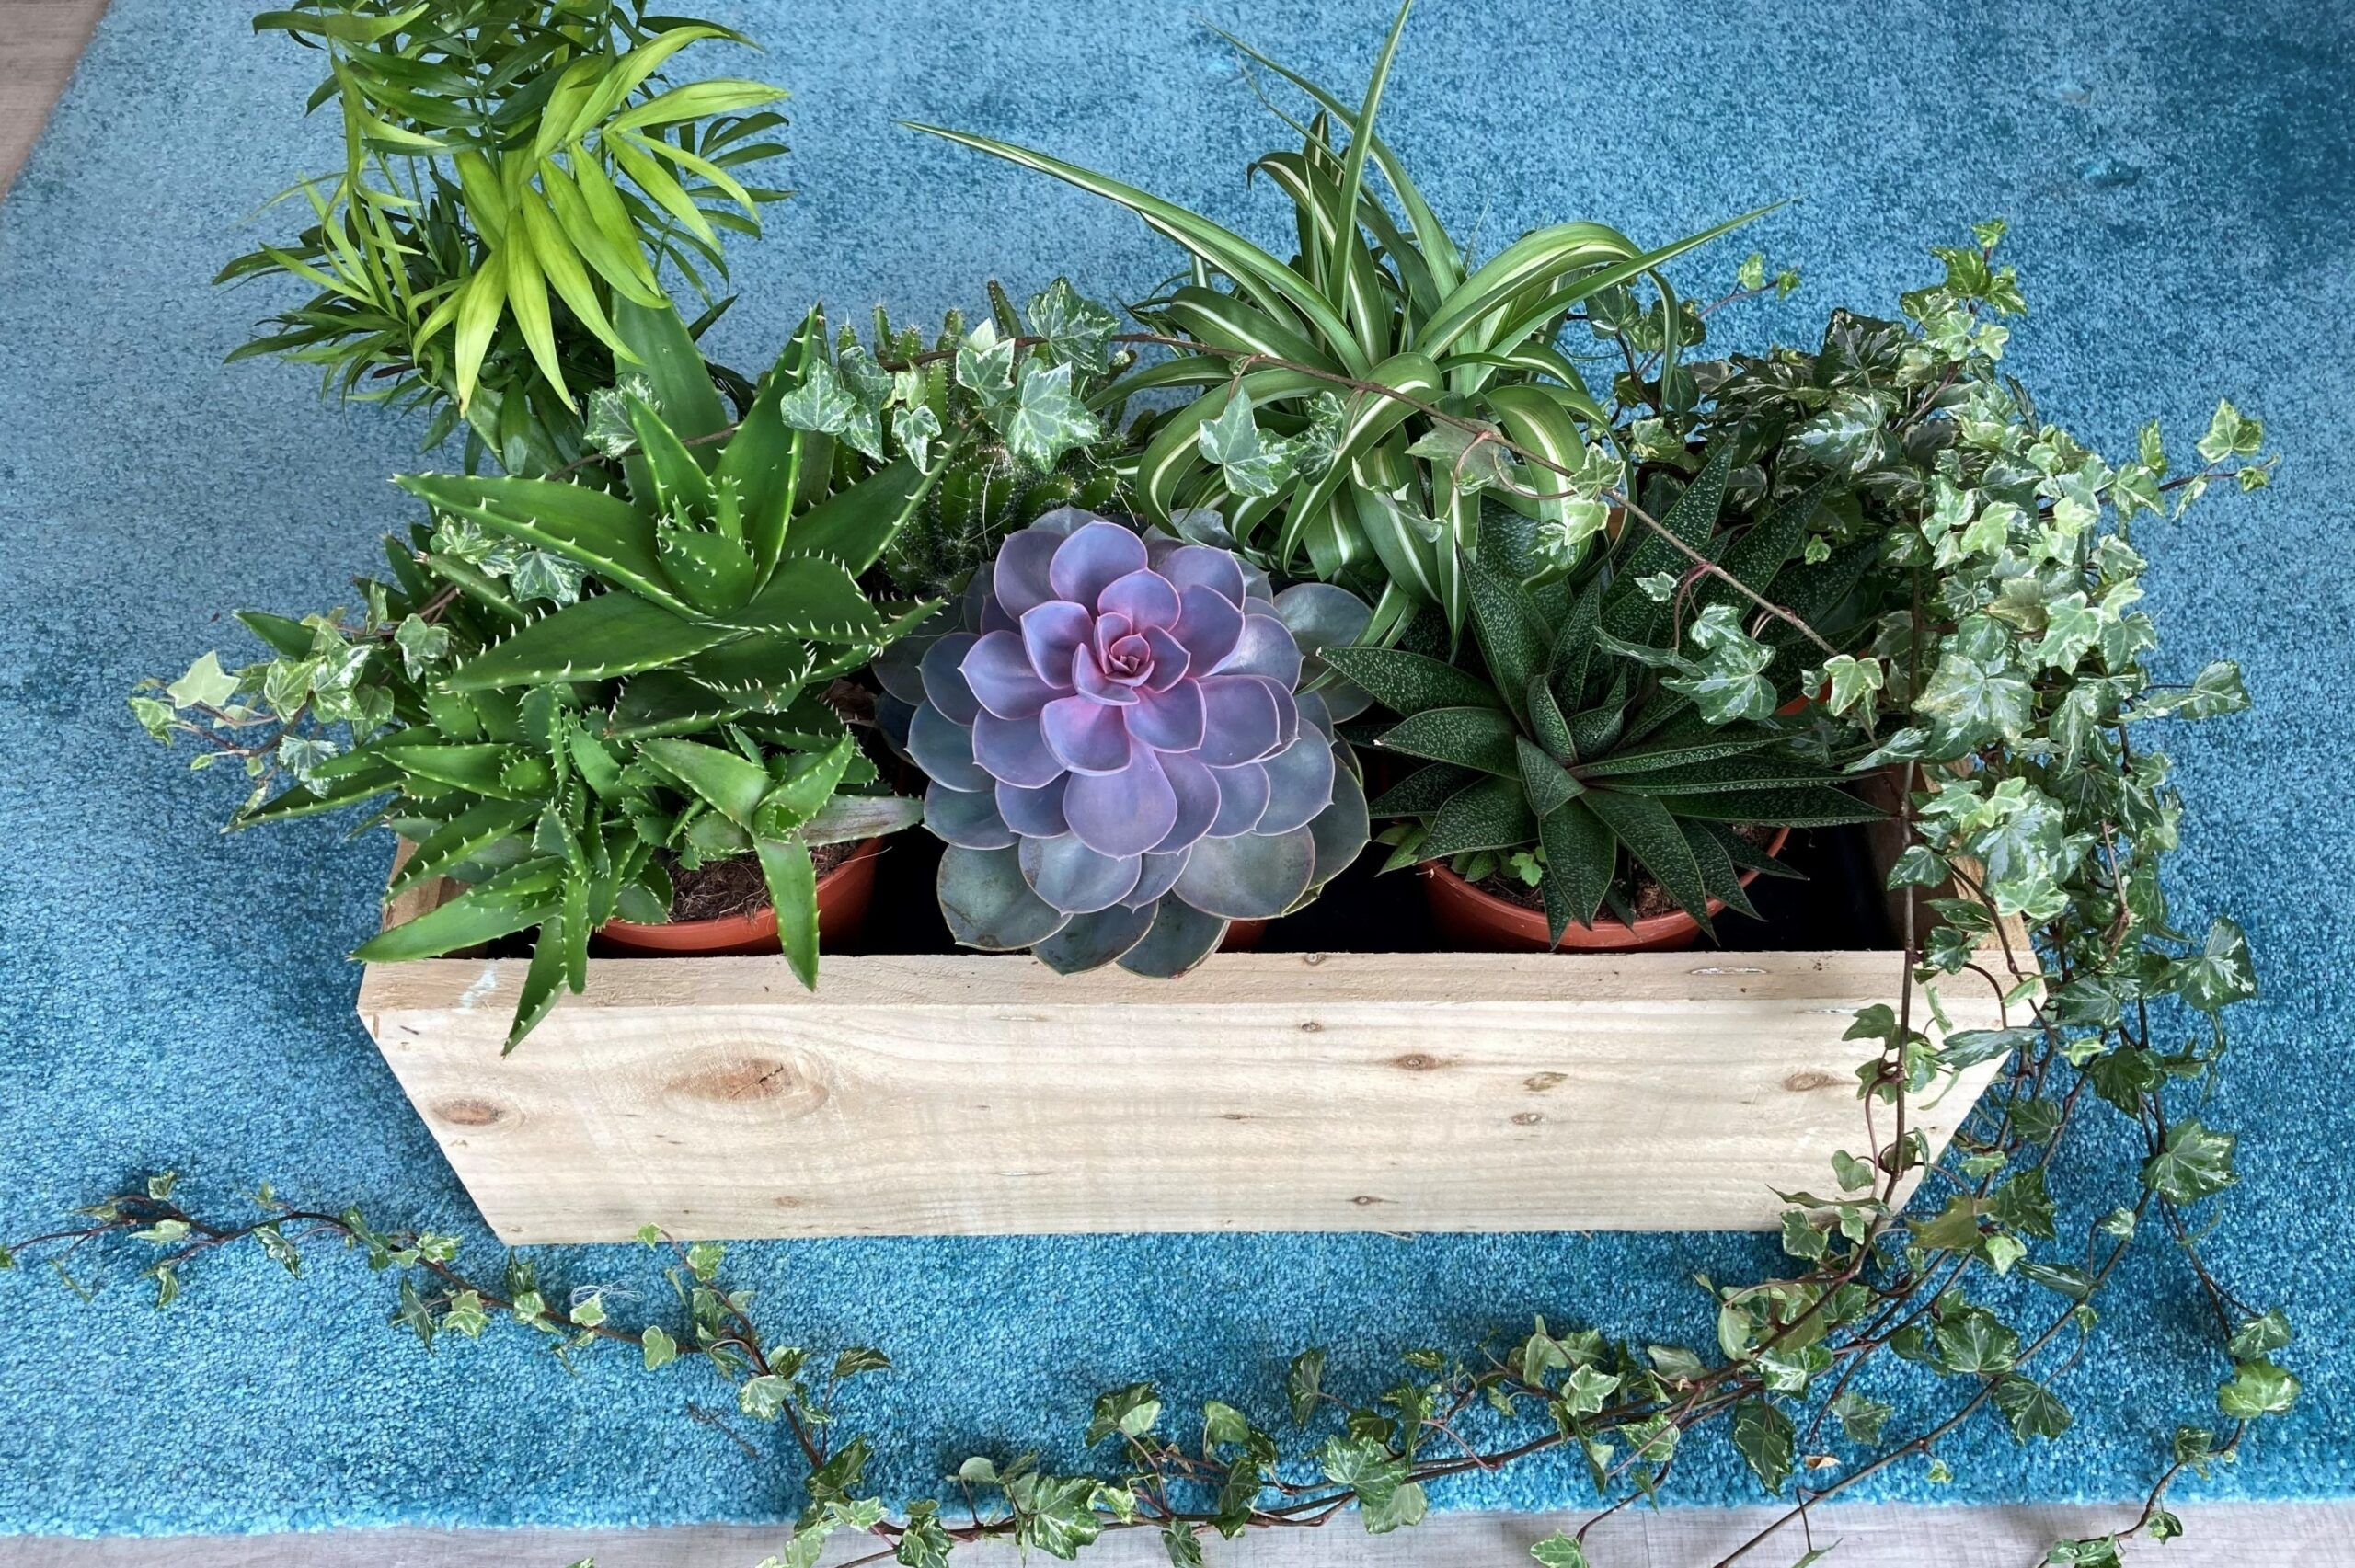 Plants in a wooden holder